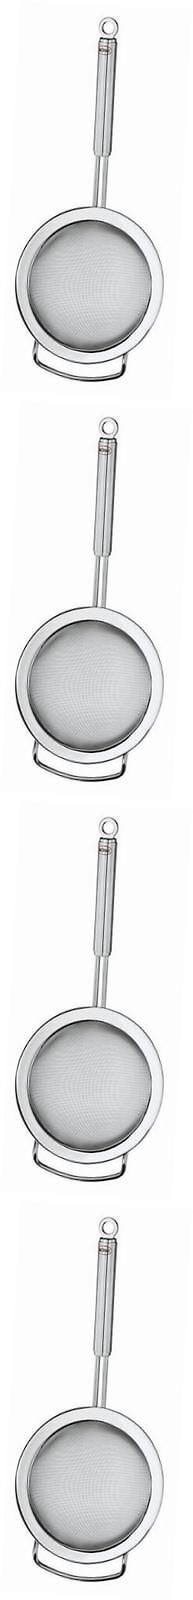 Colanders Strainers and Sifters 20636: Strainer Fine Mesh 24Cm 9.4 Inch Stainless Steel Colander -> BUY IT NOW ONLY: $91.63 on eBay!